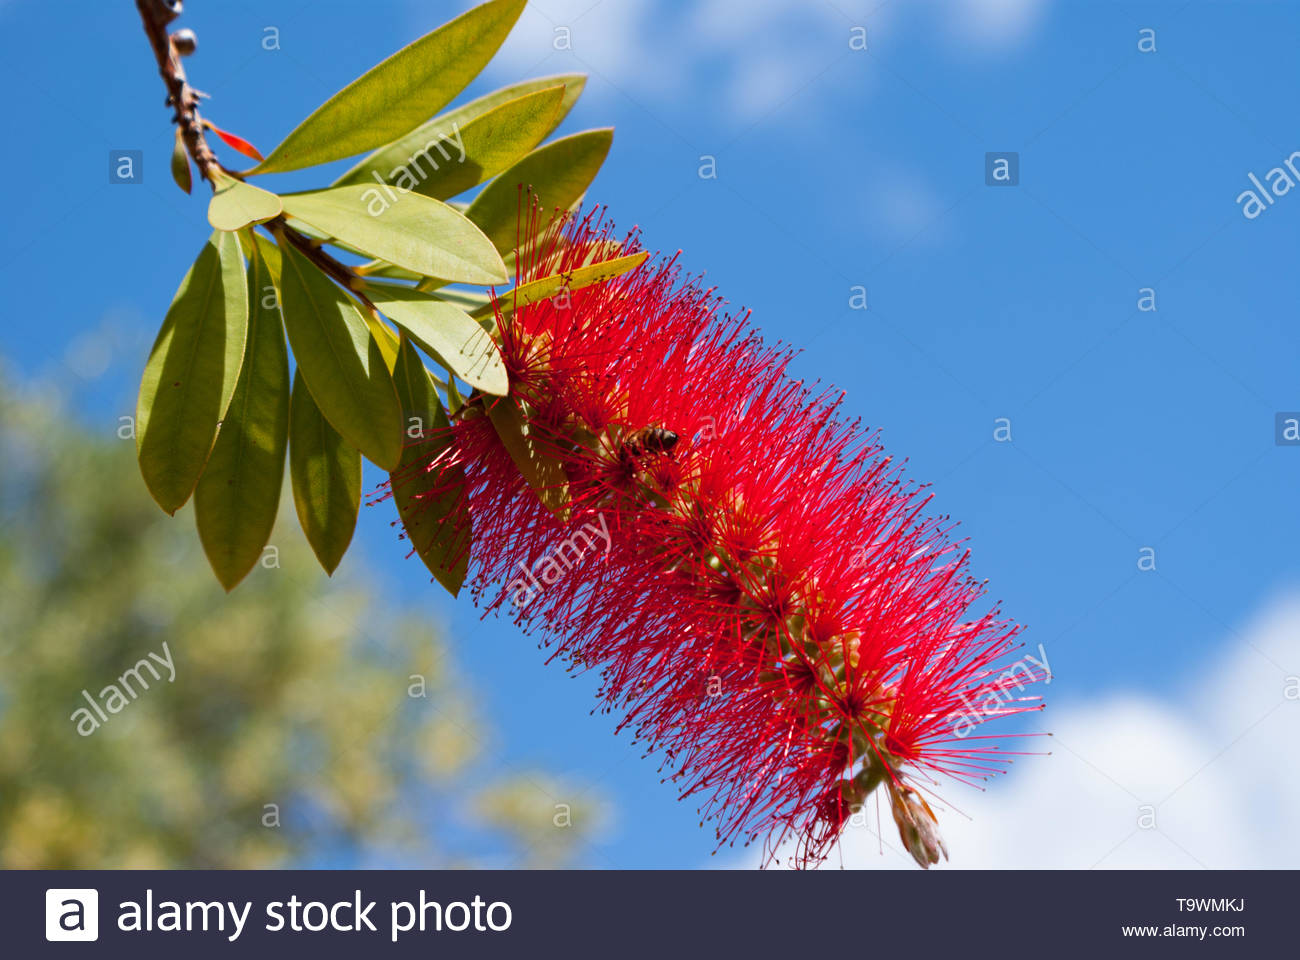 Bottlebrushes are members of the genus Callistemon and belong to the family Myrtaceae shown agaist a clear blue sky - Stock Image